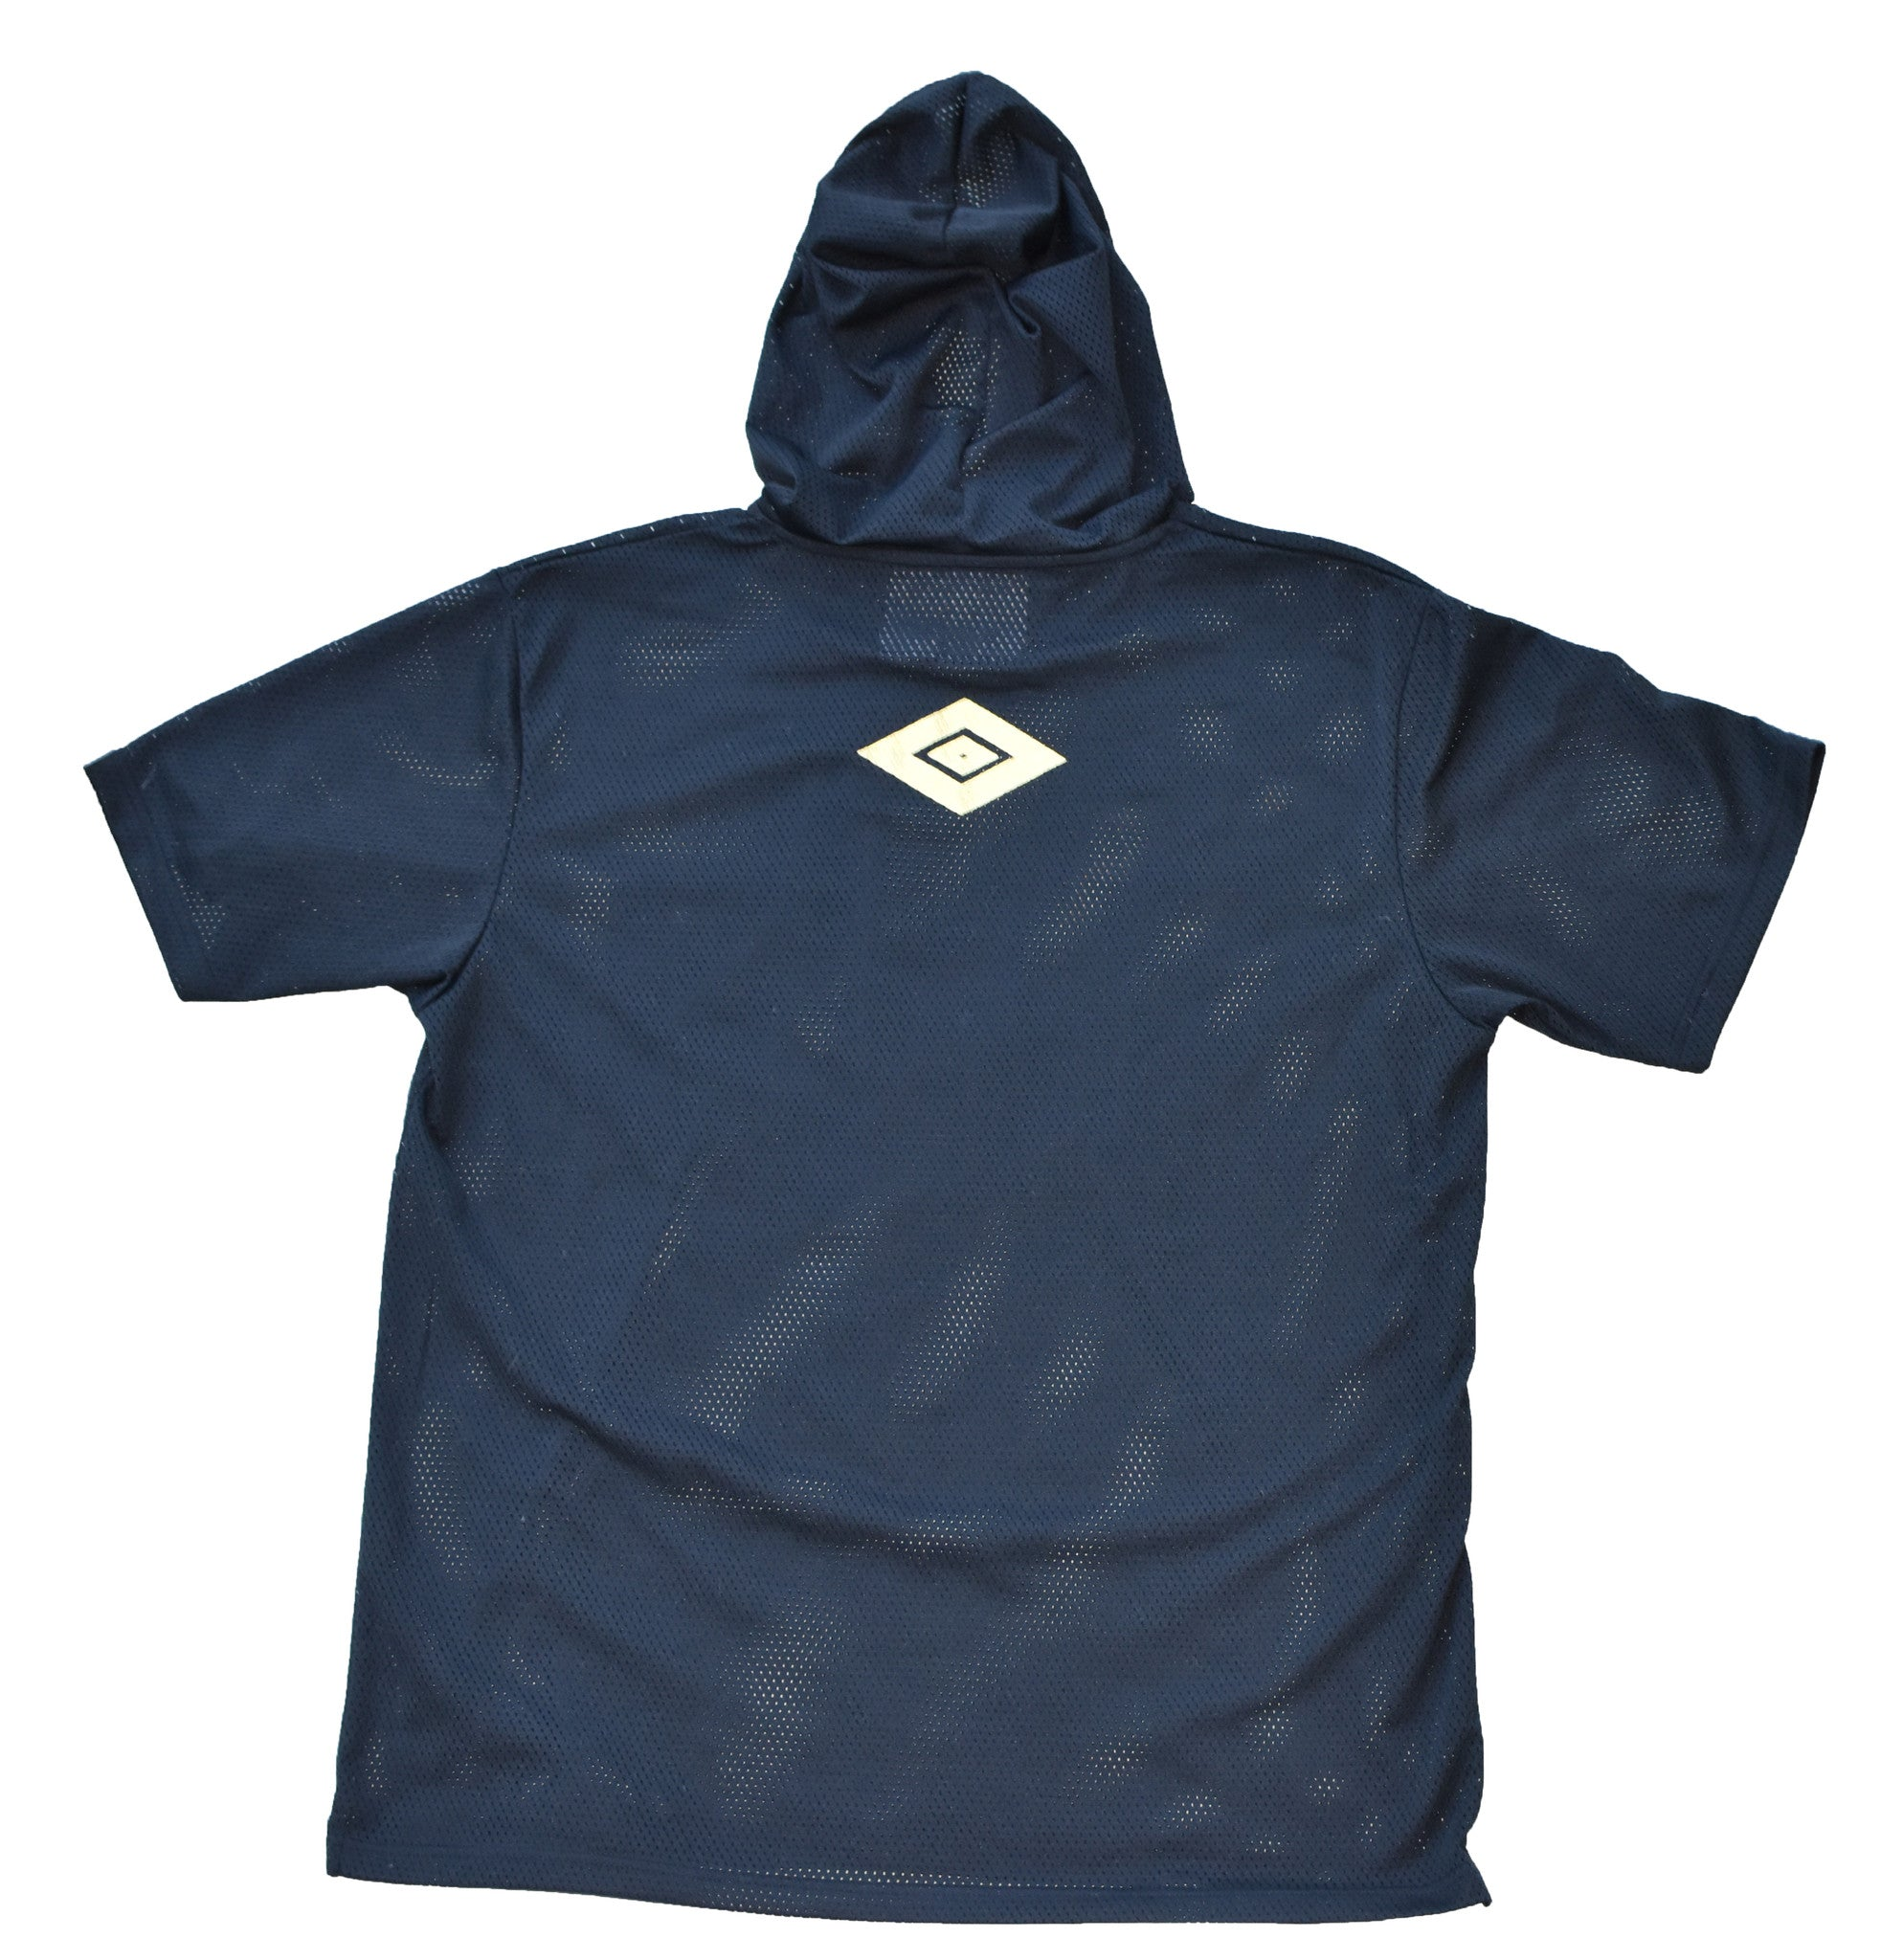 Hooded Football Jersey in Black/Gold